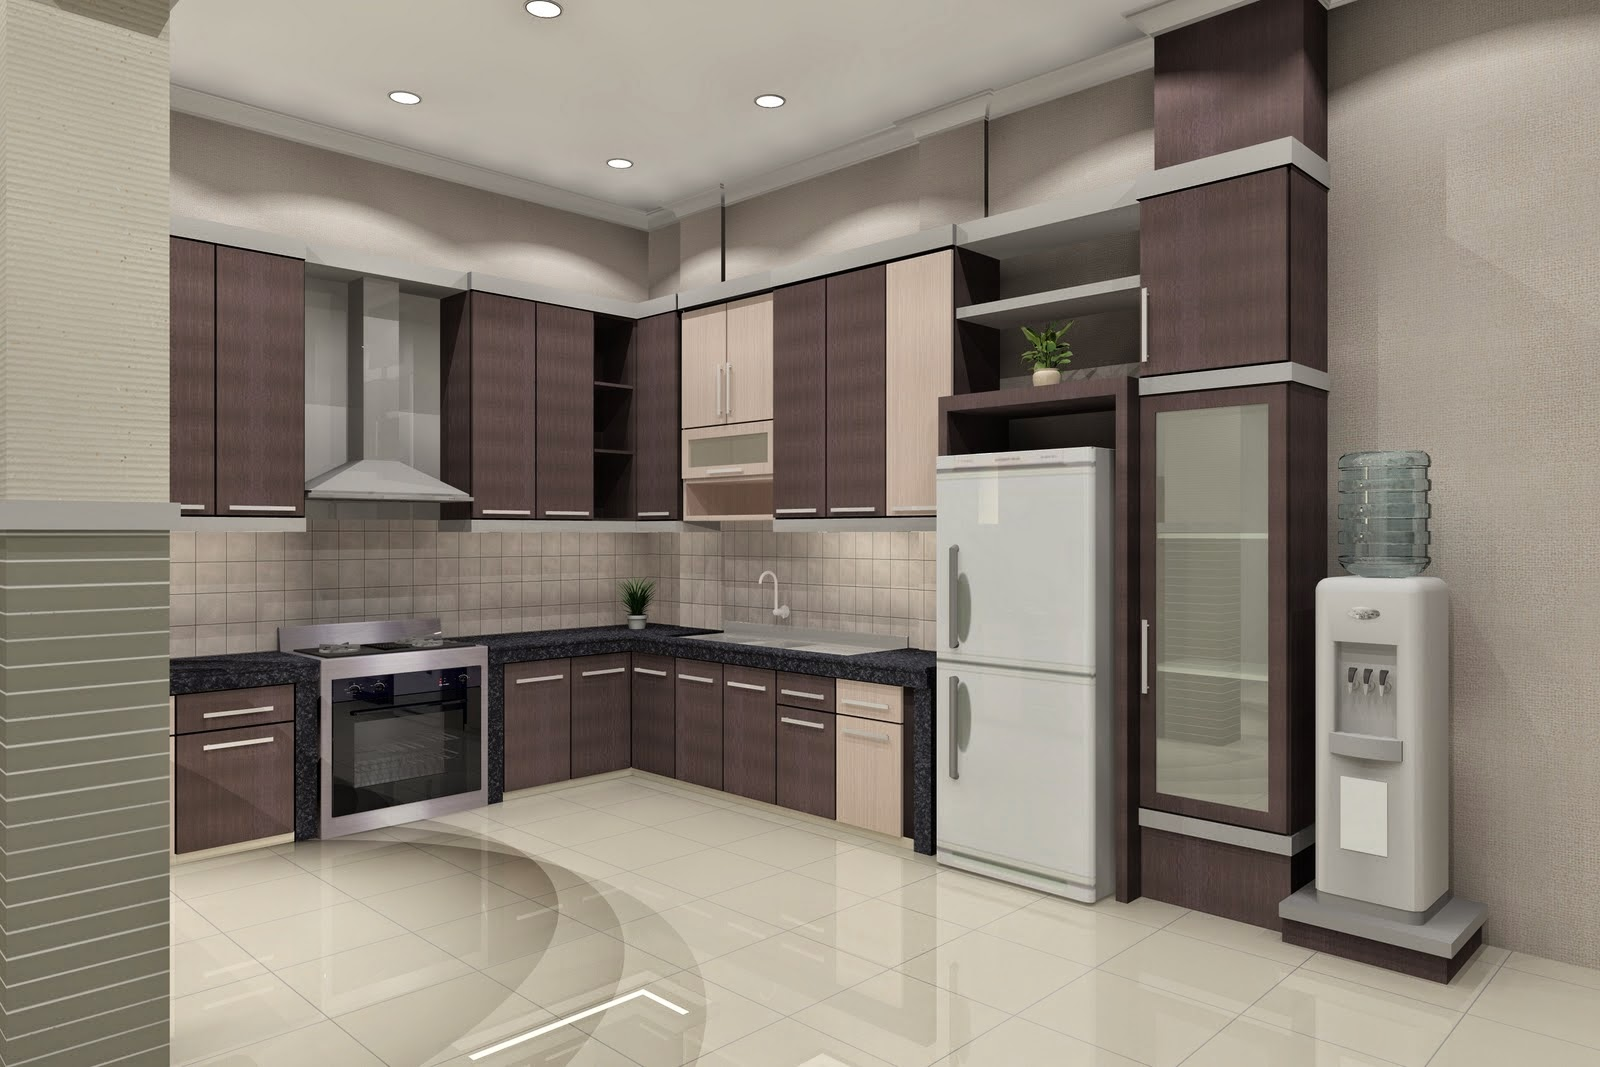 Simple minimalist kitchen design 2015 home design ideas 2015 for Modern home design 2015